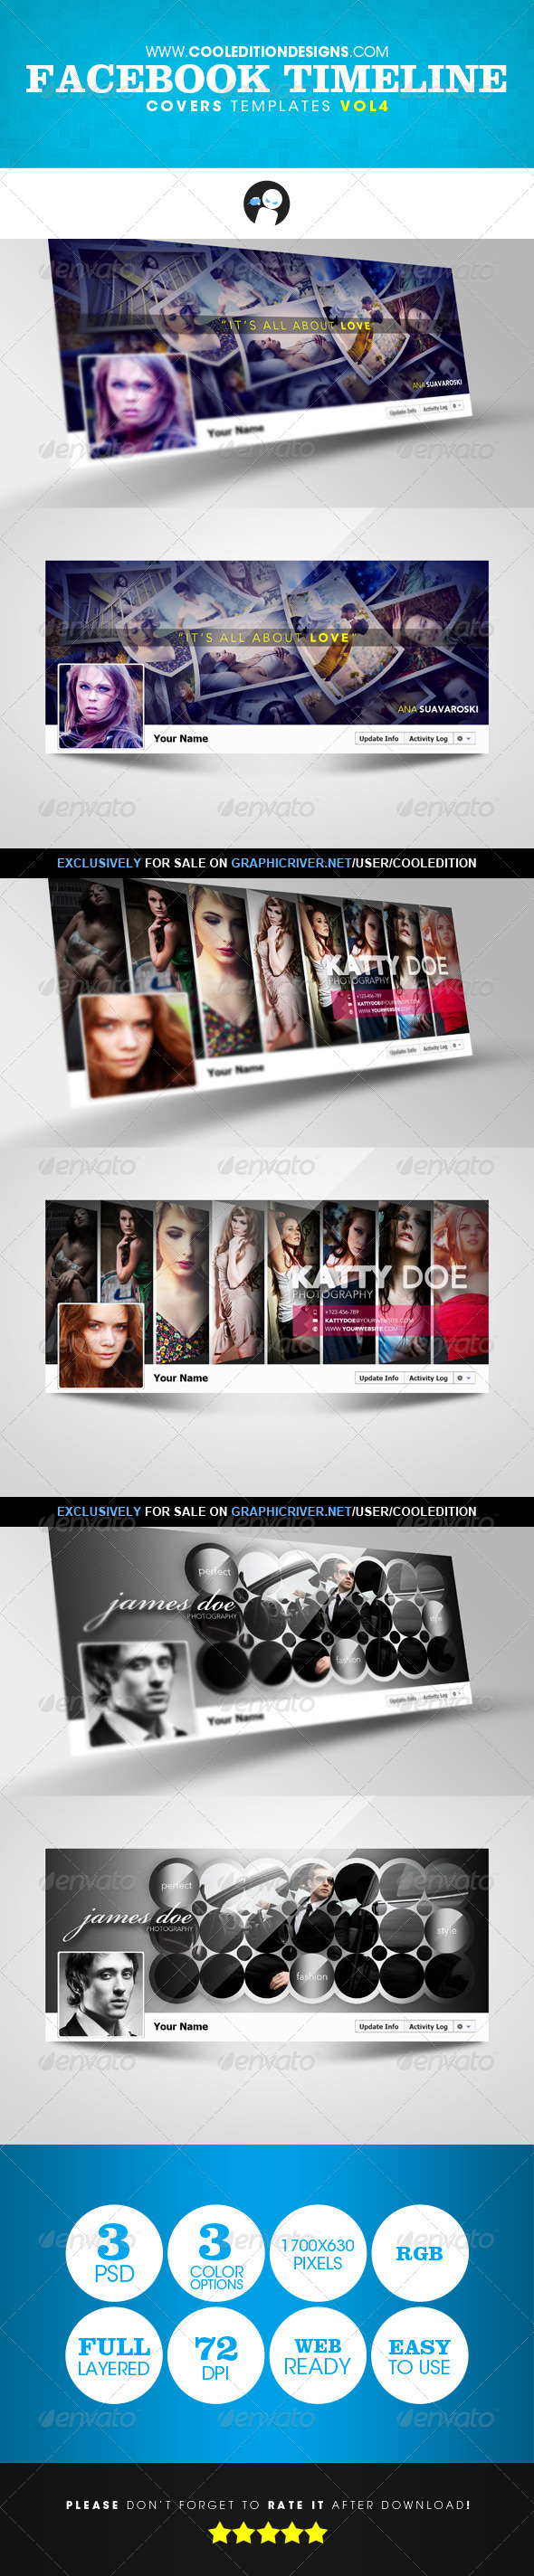 GraphicRiver Facebook Timeline Covers Templates VOL4 3029281